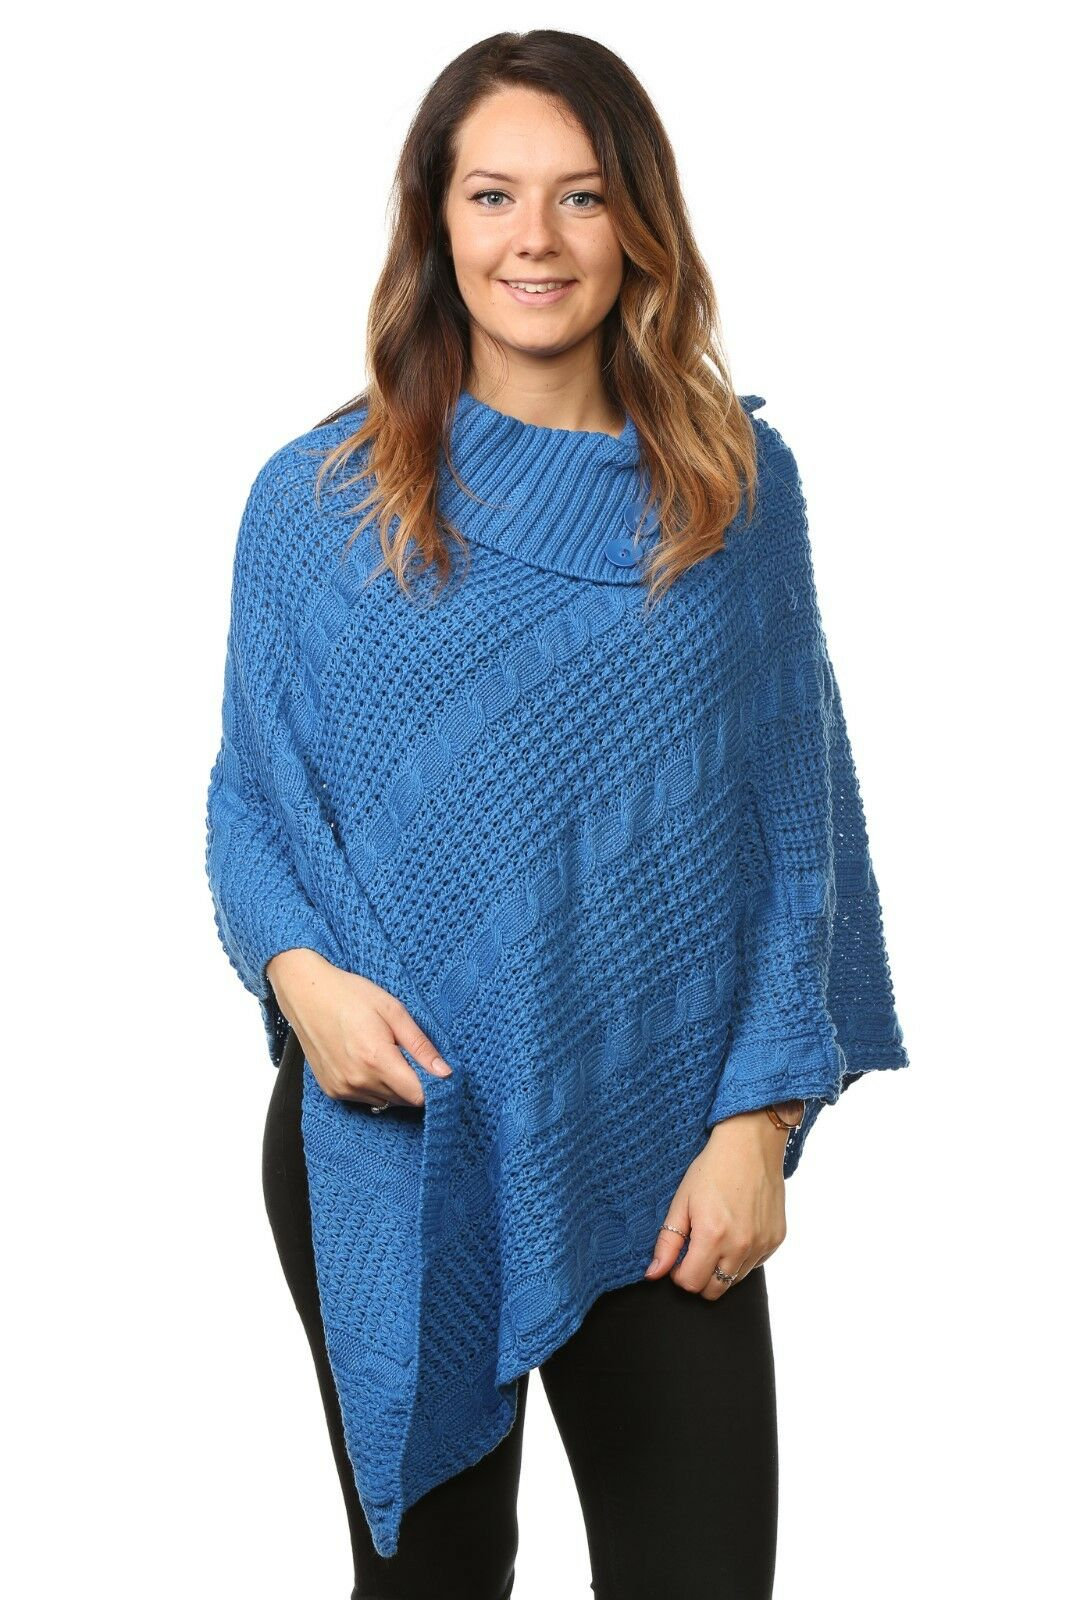 Ladies Women's Plus Sizes Cable Knitted Acrylic Poncho ...